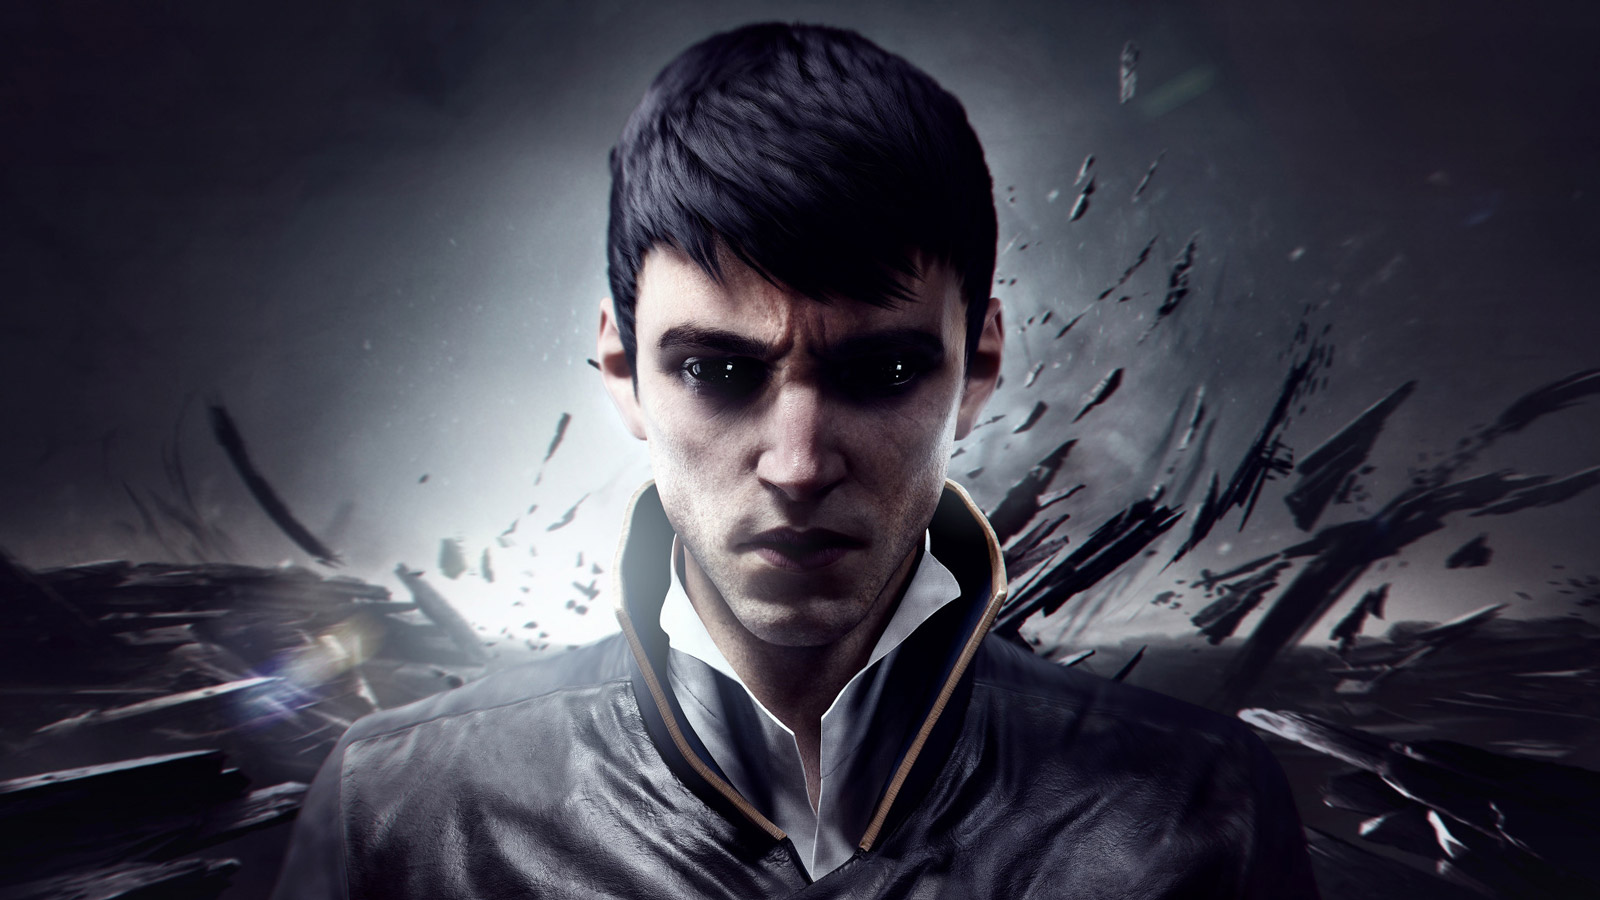 Dishonored 2 Wallpaper in 1600x900